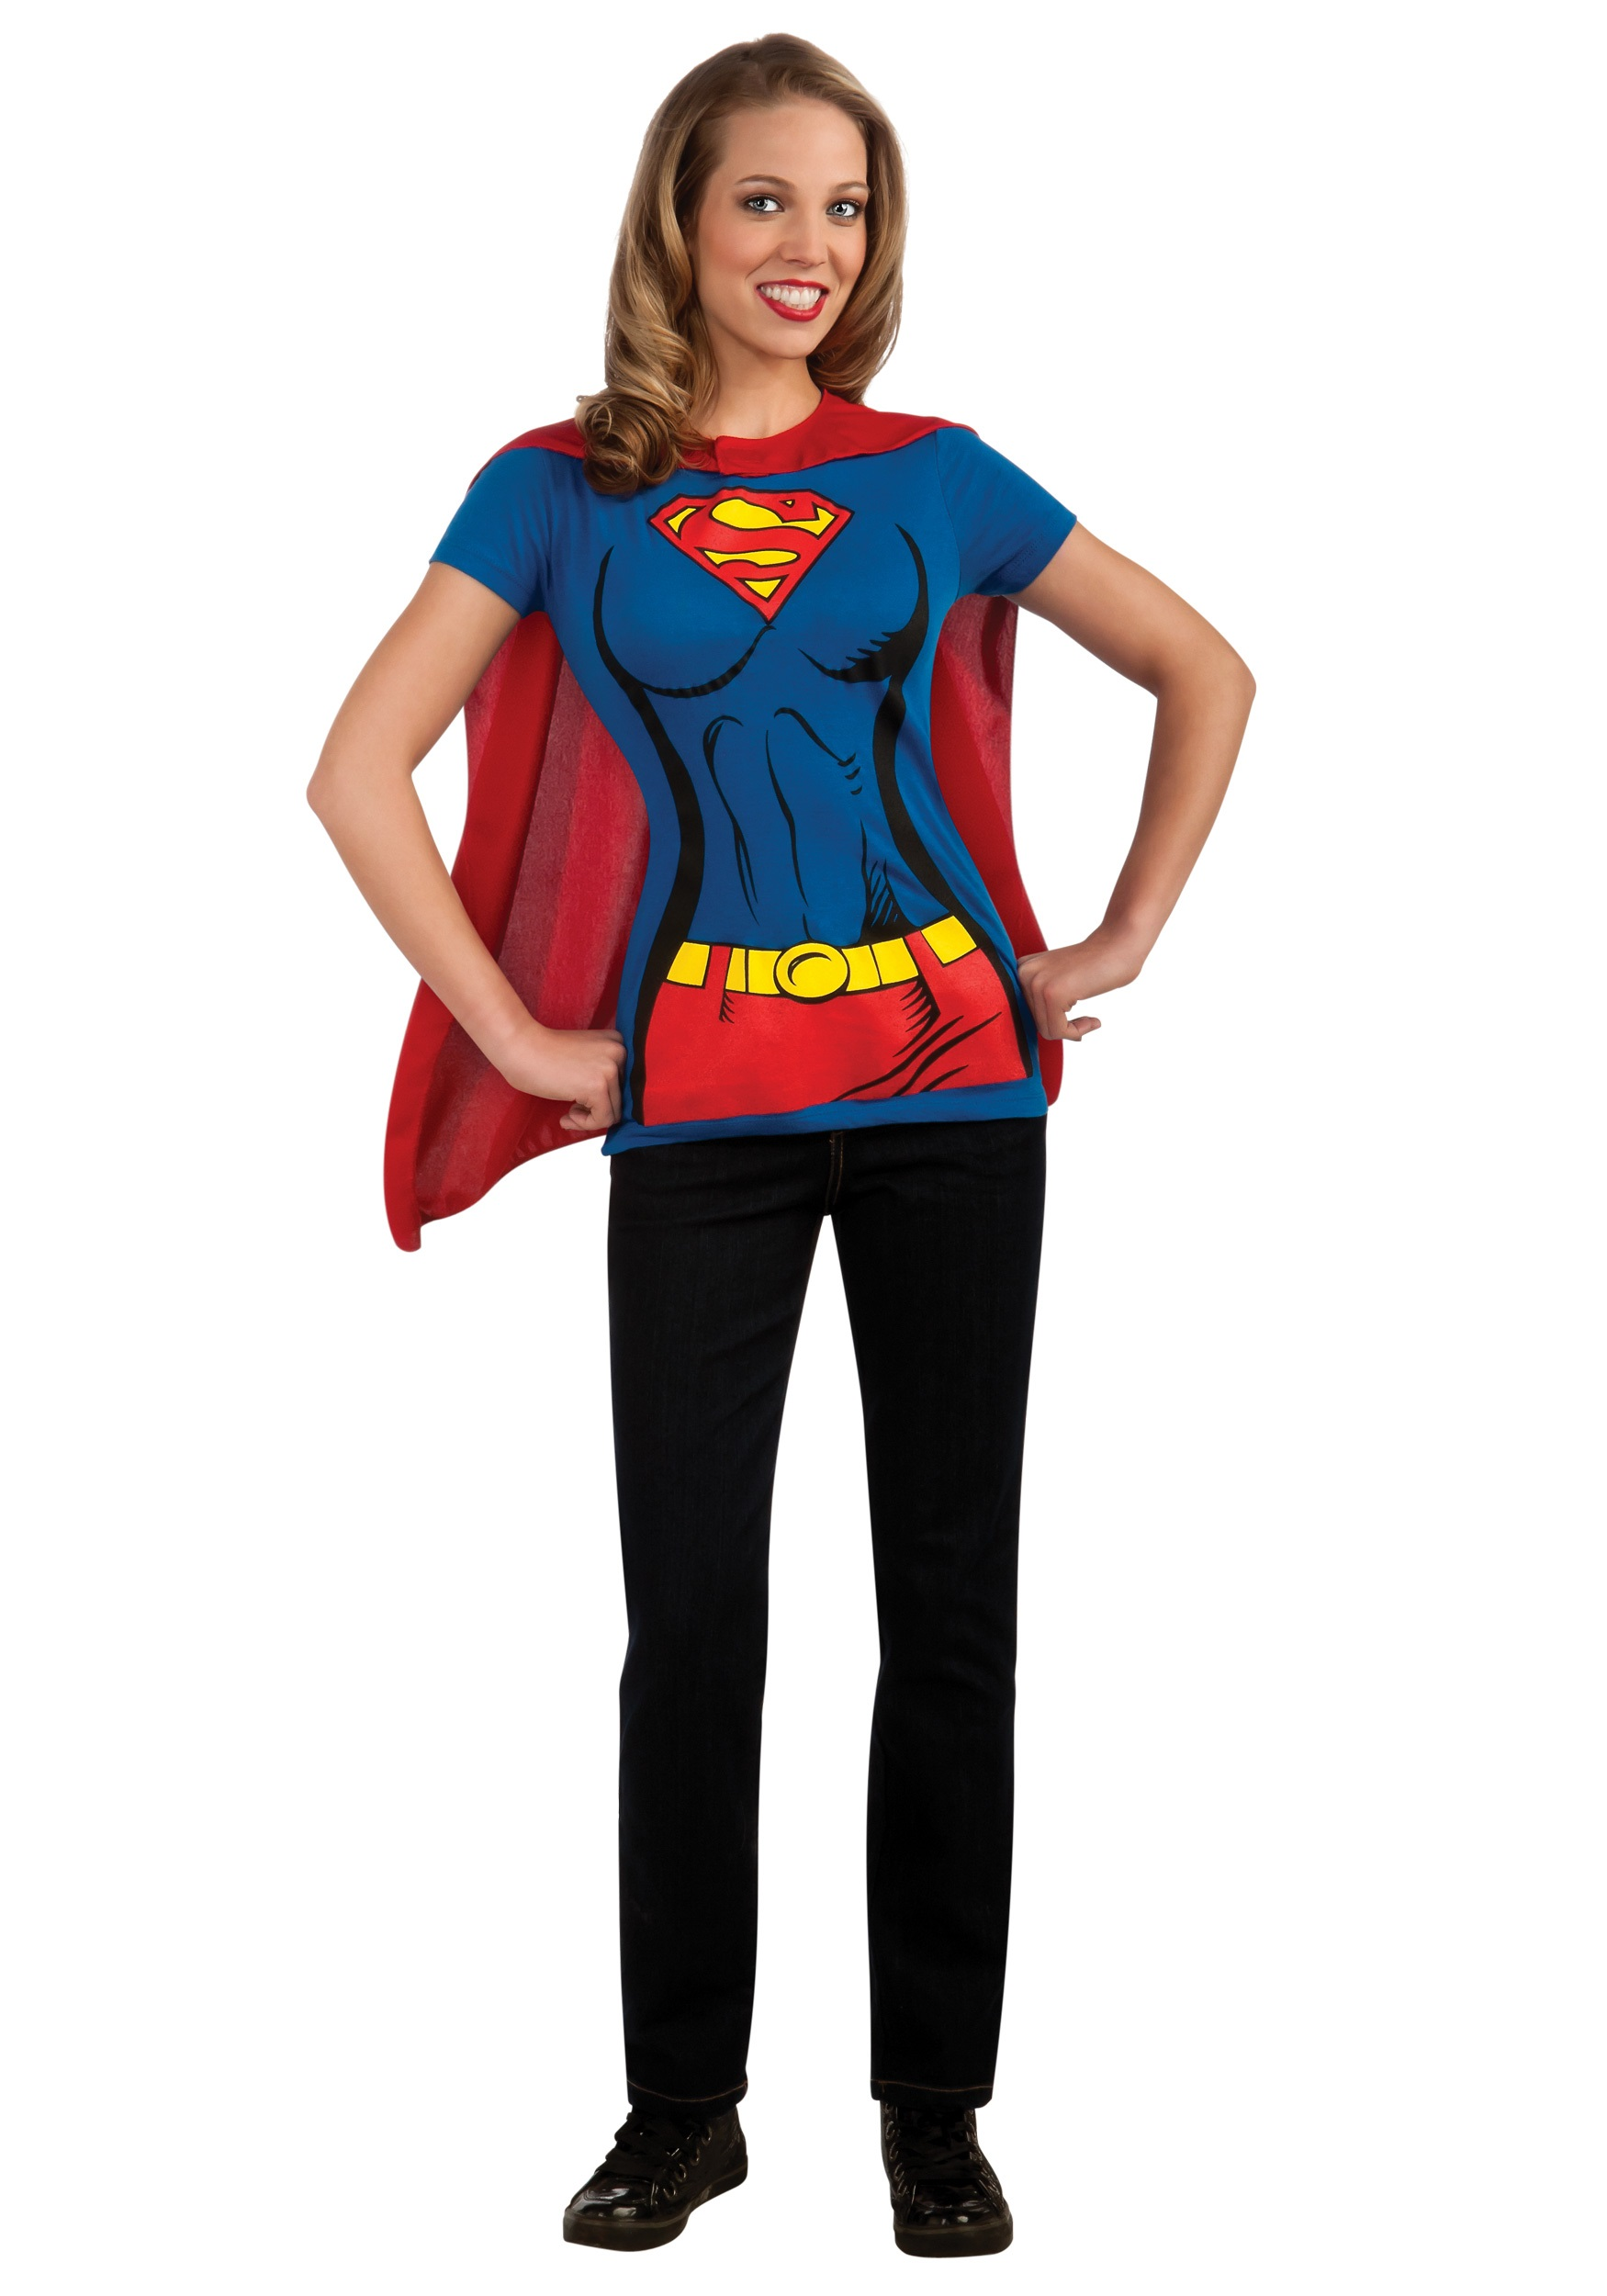 Superhero Costumes for Girls Although the vast majority of superheroes are traditionally male, there are plenty of tough and valiant chick superheroes to be found out there as well. These characters are popular favorites for girls, both for pretend dress up as well as for a Halloween costume character choice.